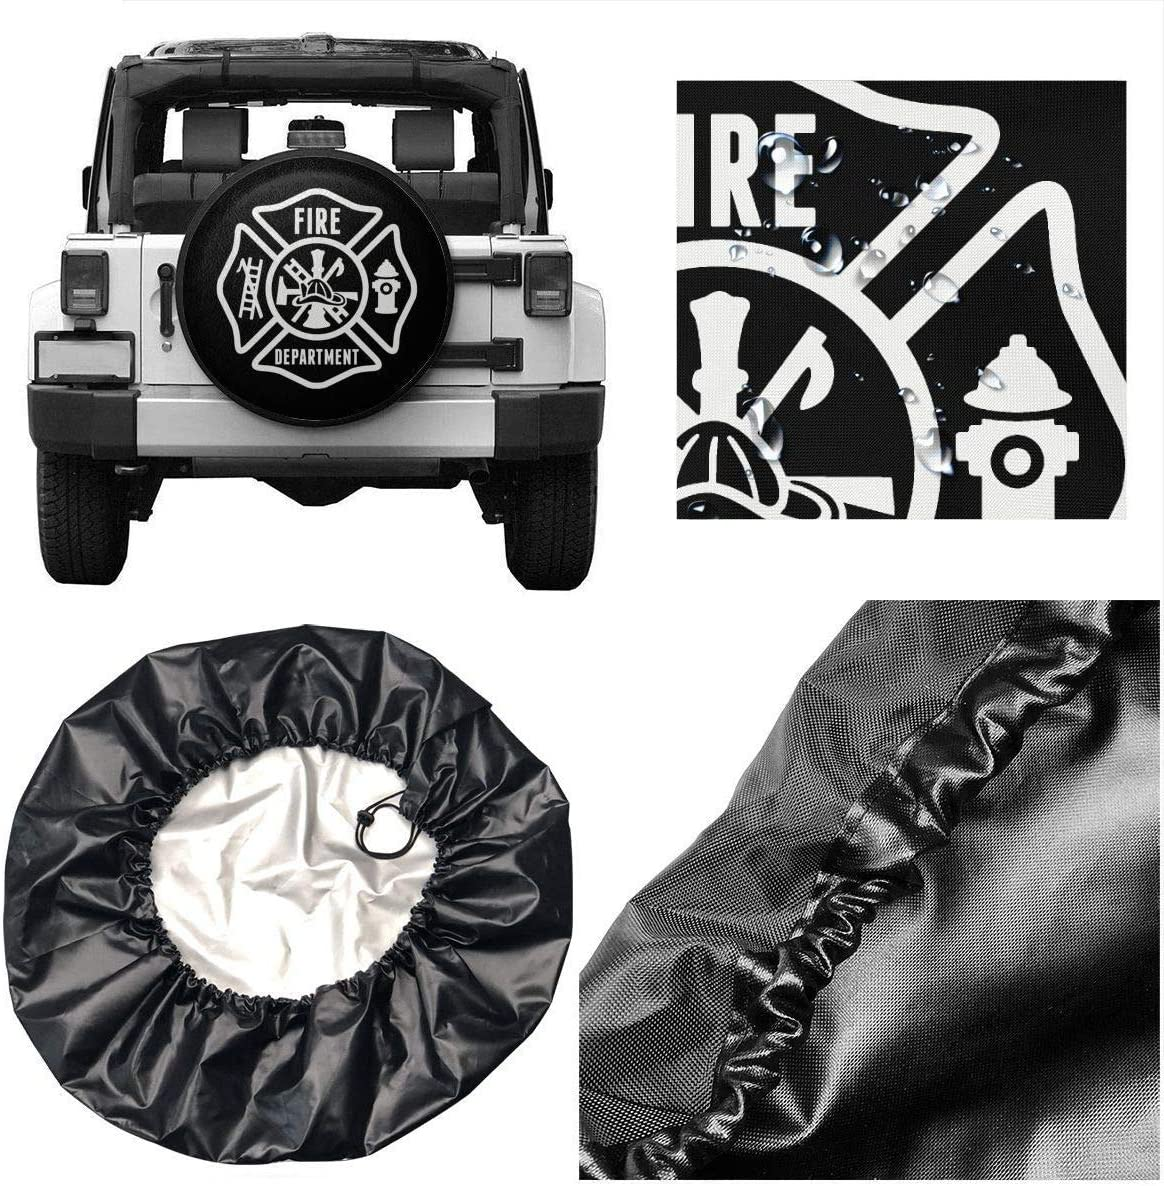 CXHKJ Fire Department Spare Wheel Tire Cover Funny Waterproof Tire Protectors Novelty